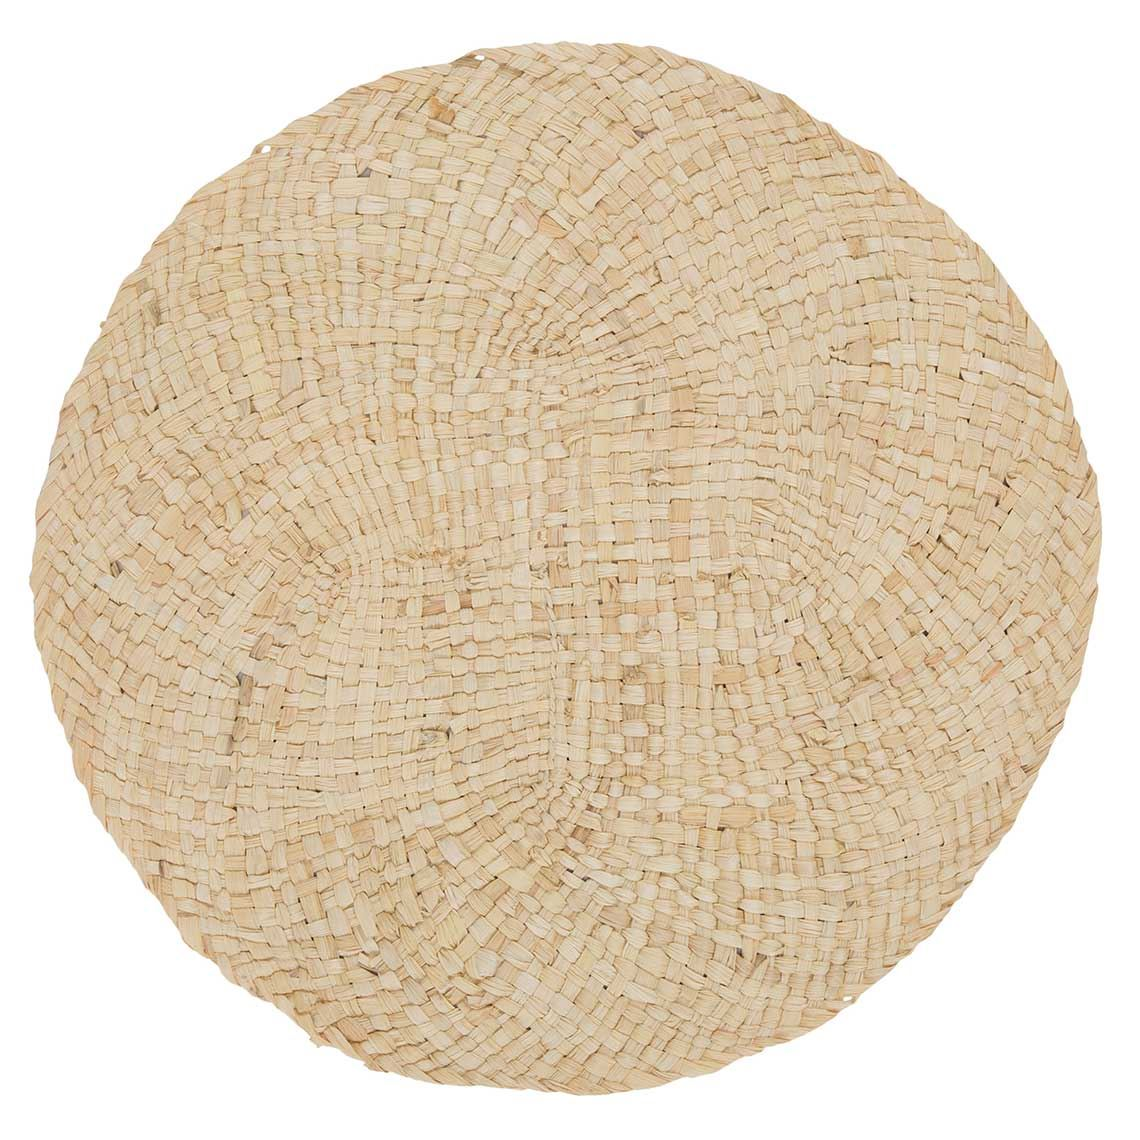 Iwu Round Placemat Size W 38cm x D 0cm x H 38cm in Natural 100% Maize Peel Freedom by Freedom, a Placemats for sale on Style Sourcebook